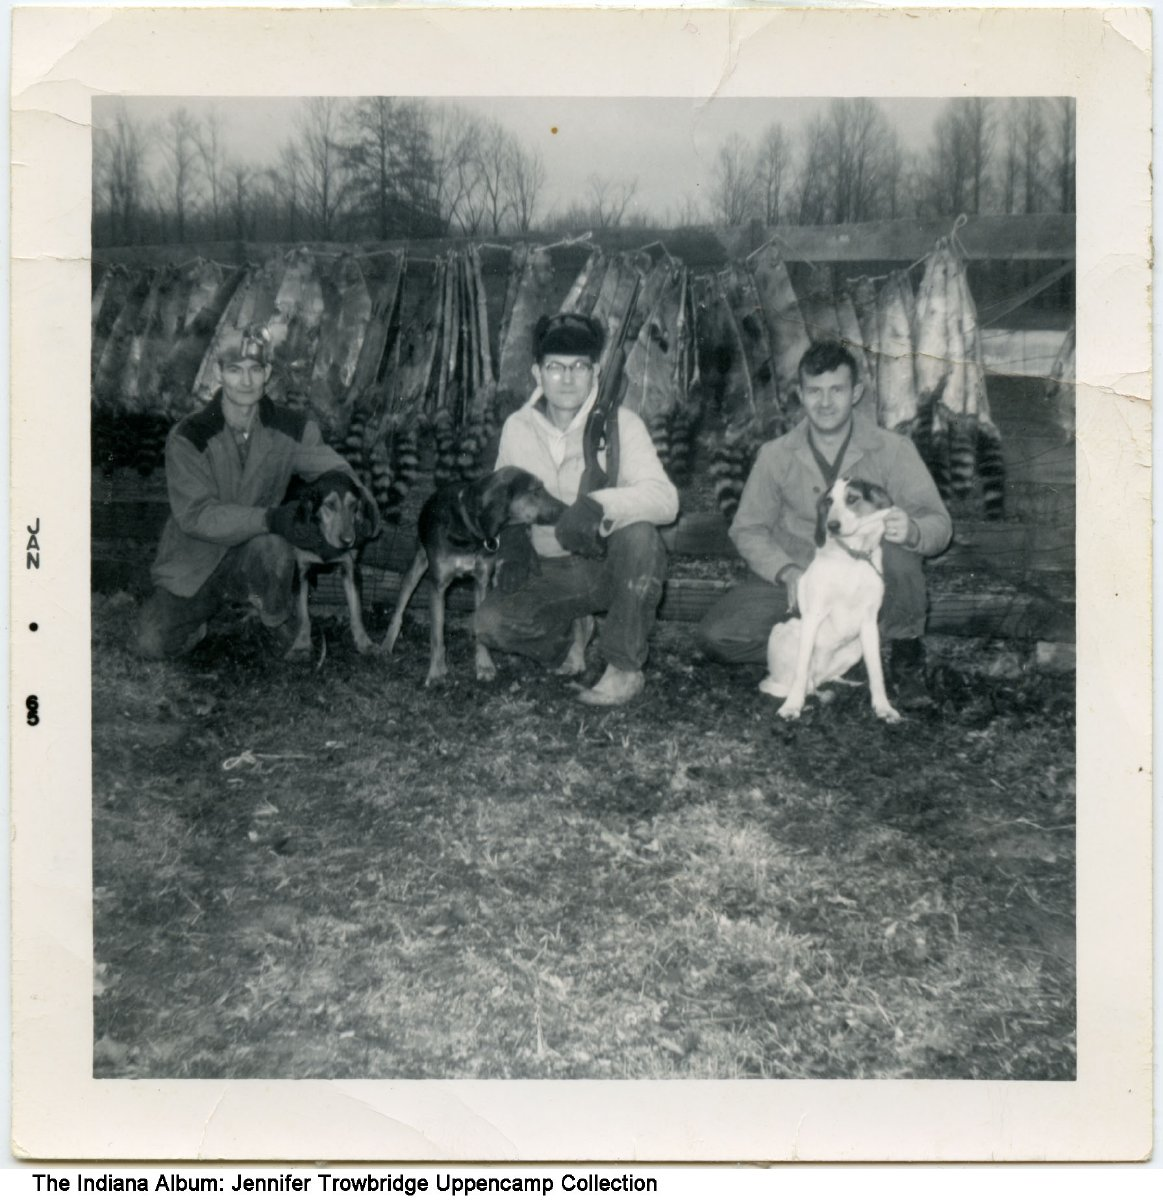 Indiana pike county otwell - Racoon Hunters And Their Dogs Otwell Indiana Ca 1965 Left To Right James Roy Uppencamp Edward Uppencamp And Tom Osgatharp